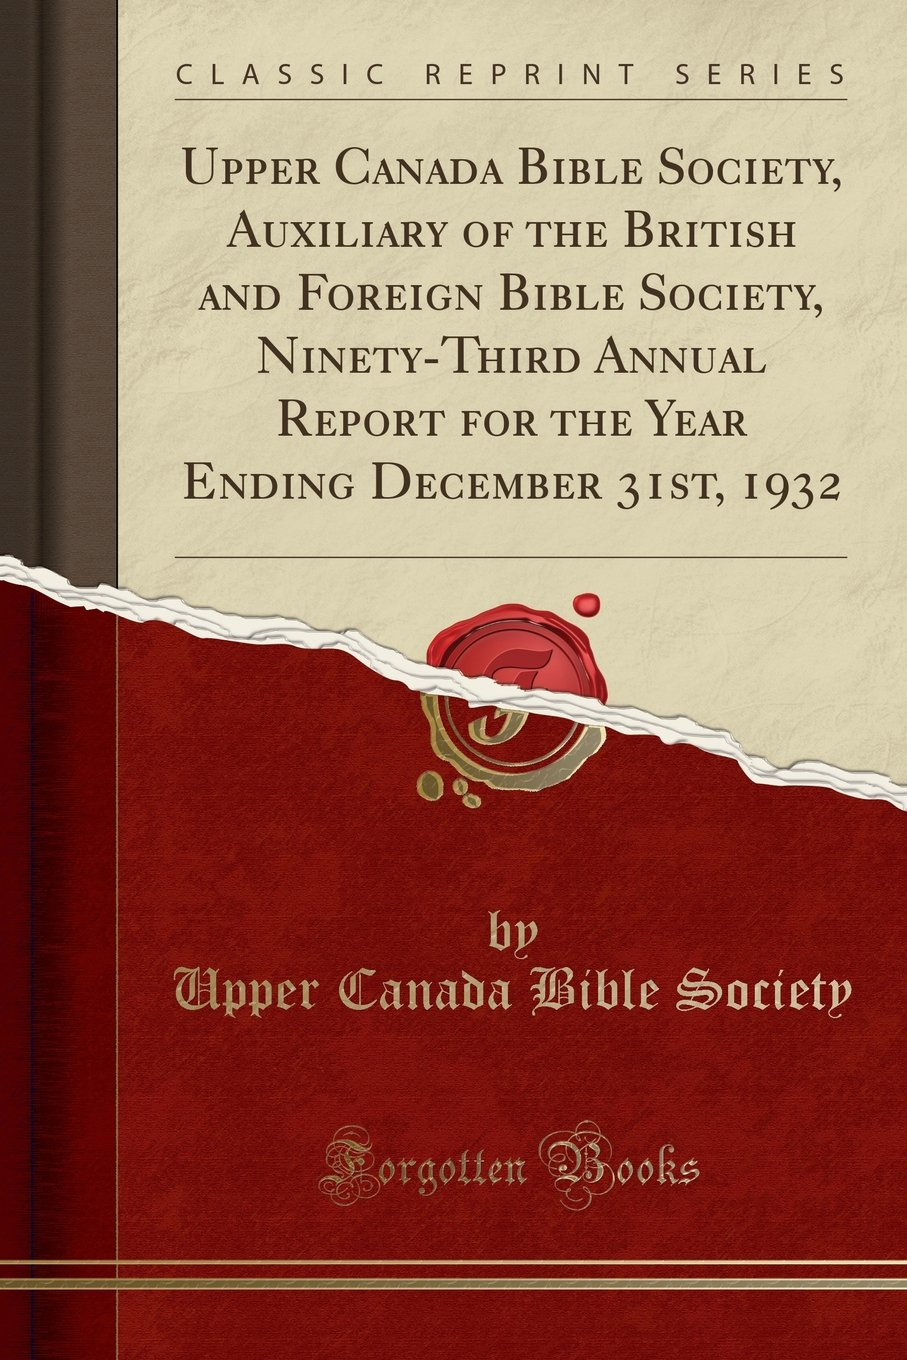 Download Upper Canada Bible Society, Auxiliary of the British and Foreign Bible Society, Ninety-Third Annual Report for the Year Ending December 31st, 1932 (Classic Reprint) pdf